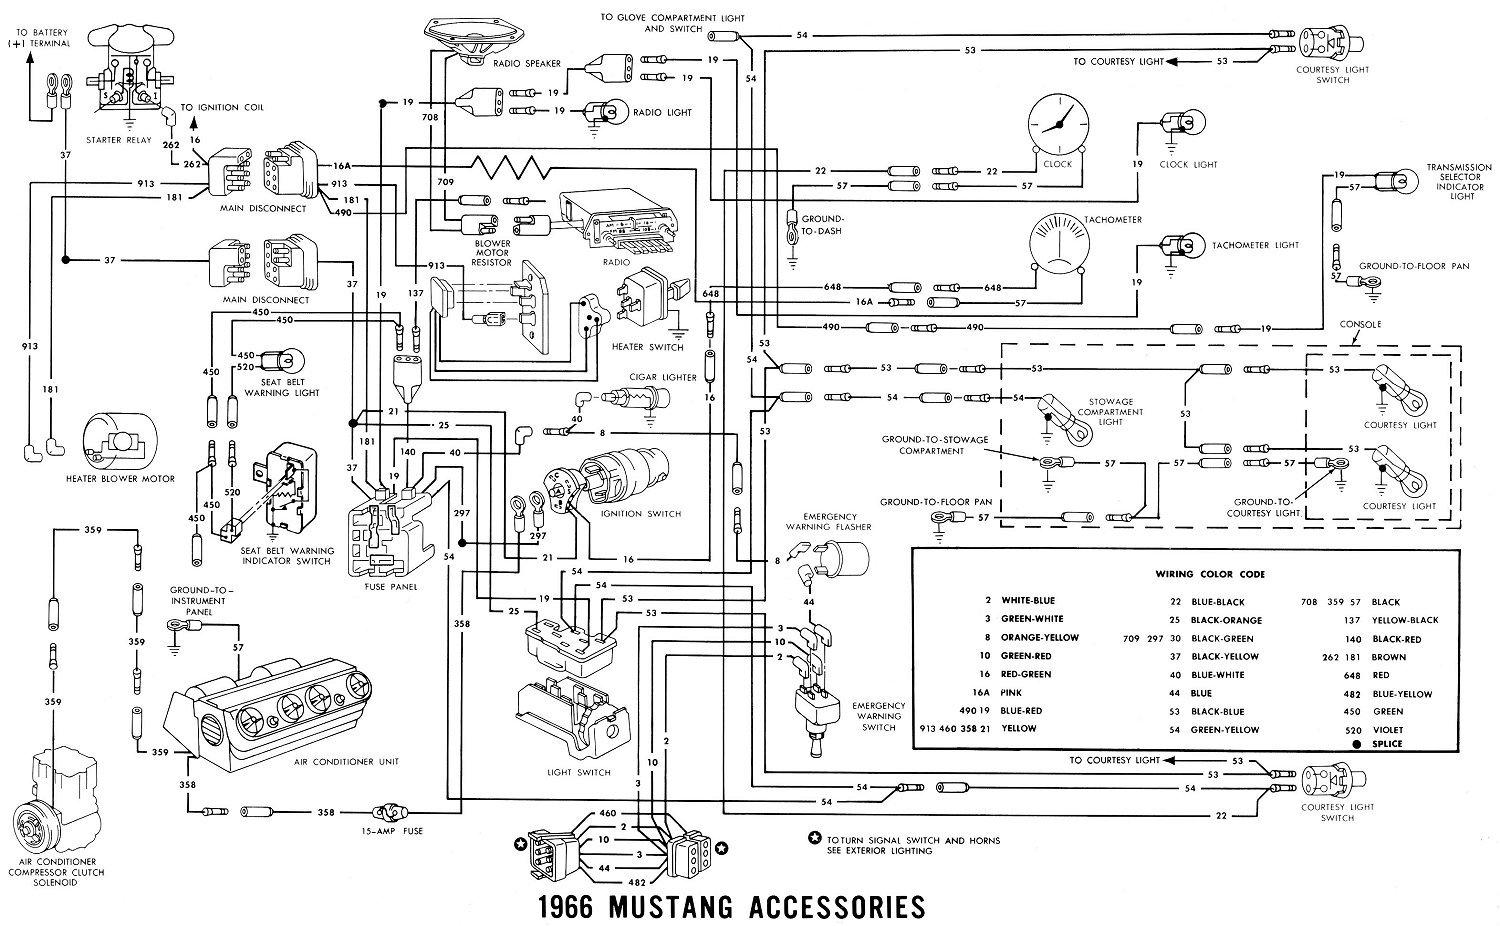 66acces1 vintage mustang wiring diagrams 1965 mustang wiring diagram pdf at couponss.co